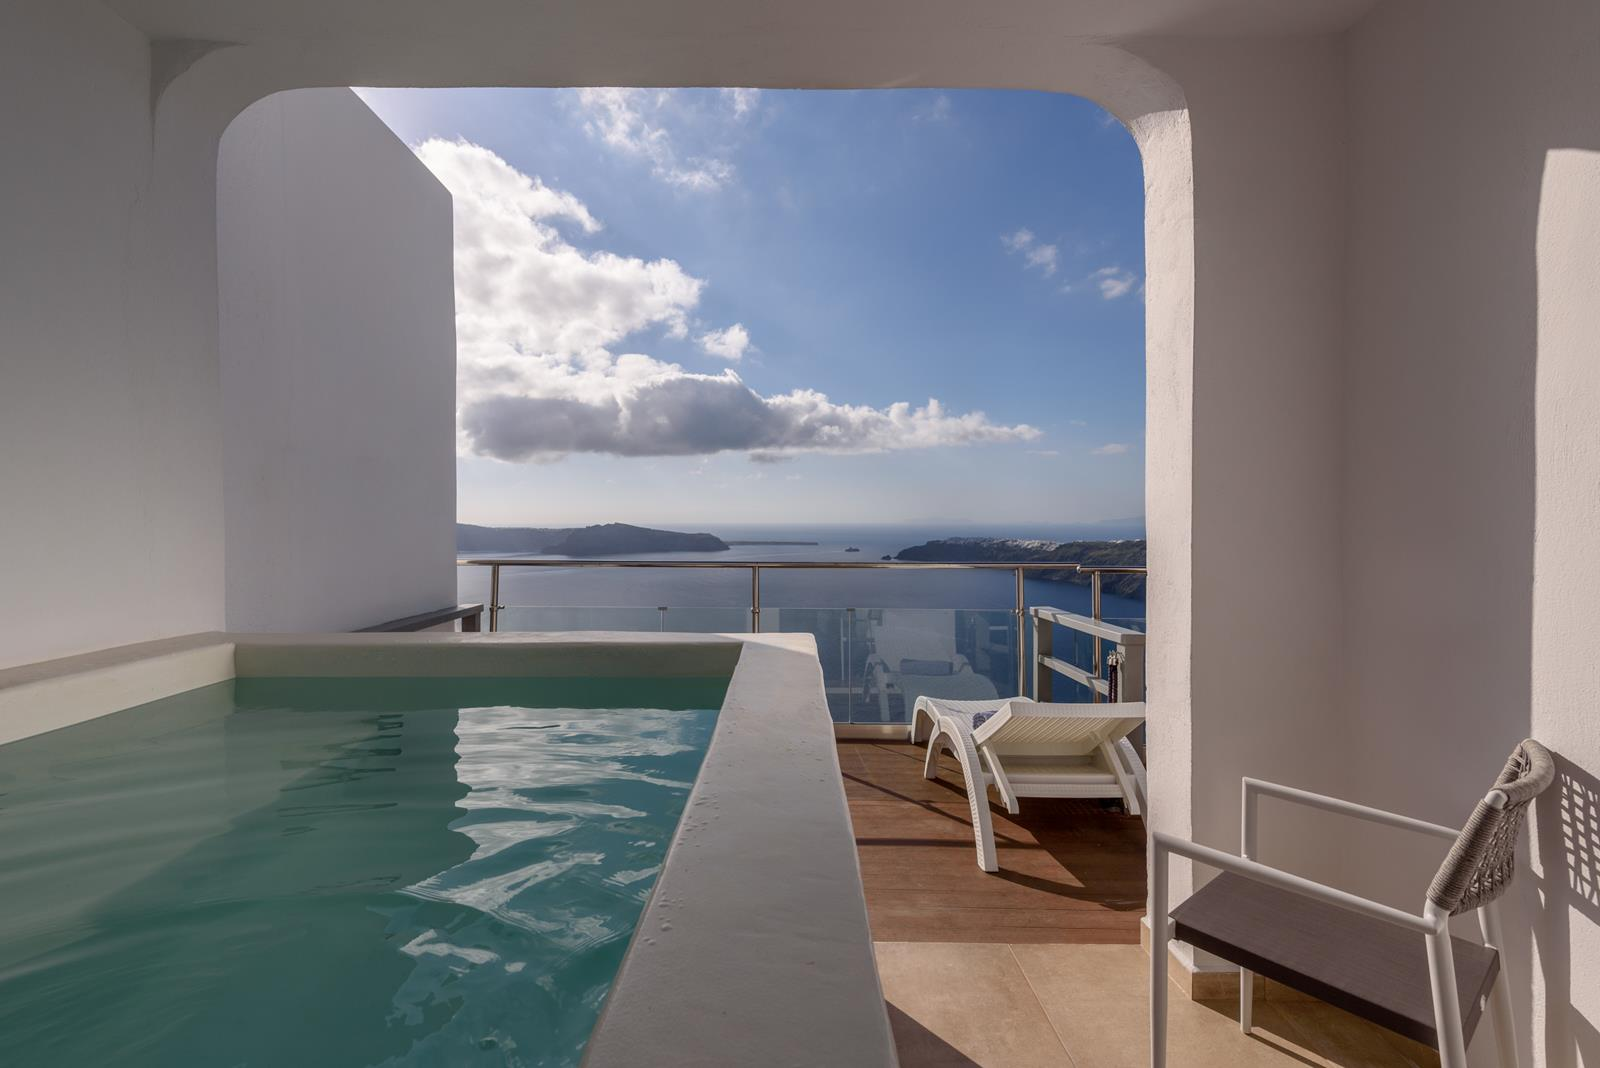 santorini hotel - Gizis Exclusive Santorini Greece